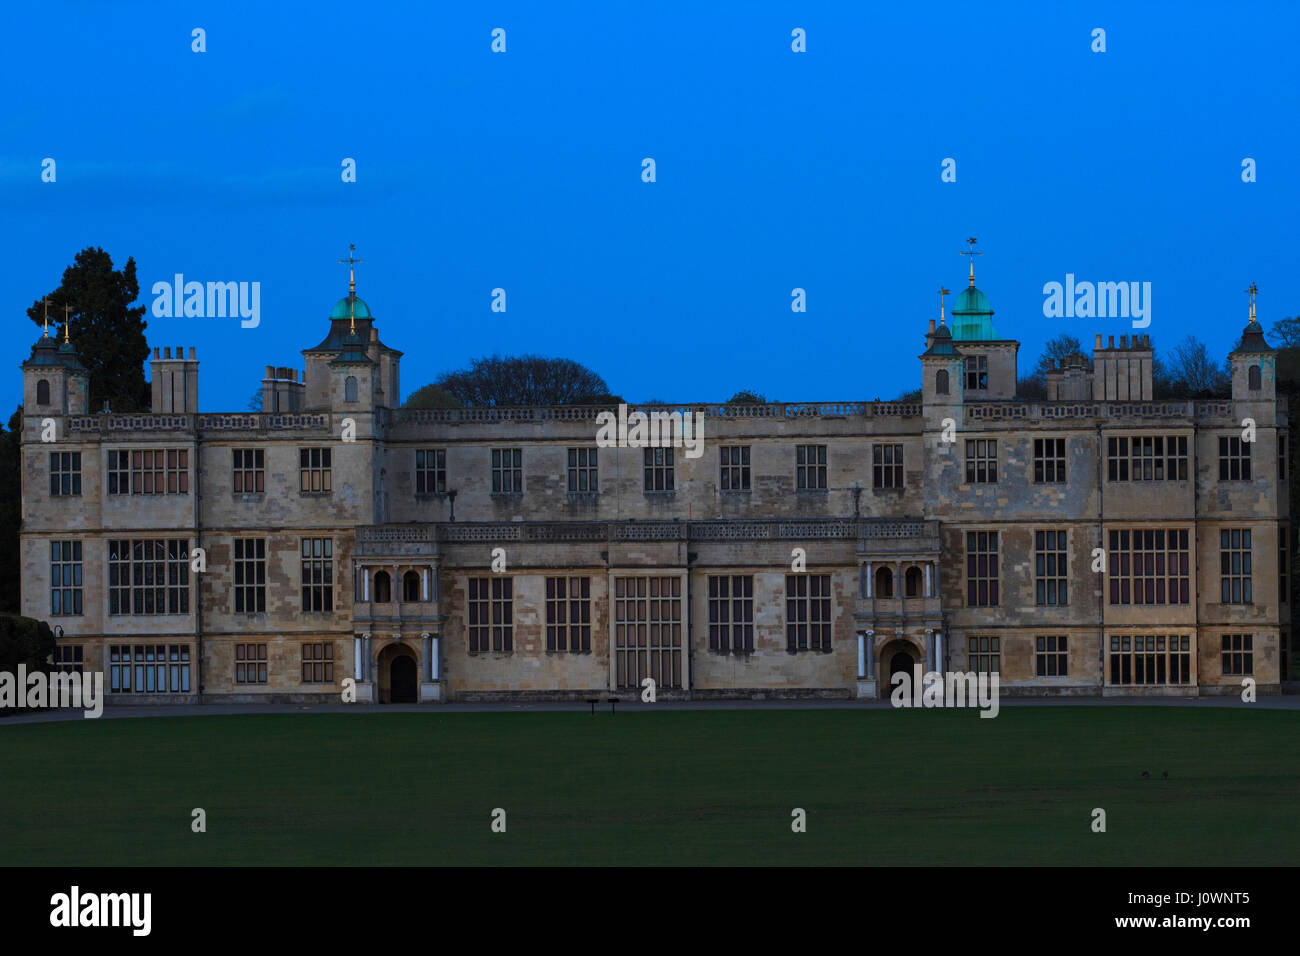 Audley End House & Gardens at Dusk/Blue Hour - Stock Image